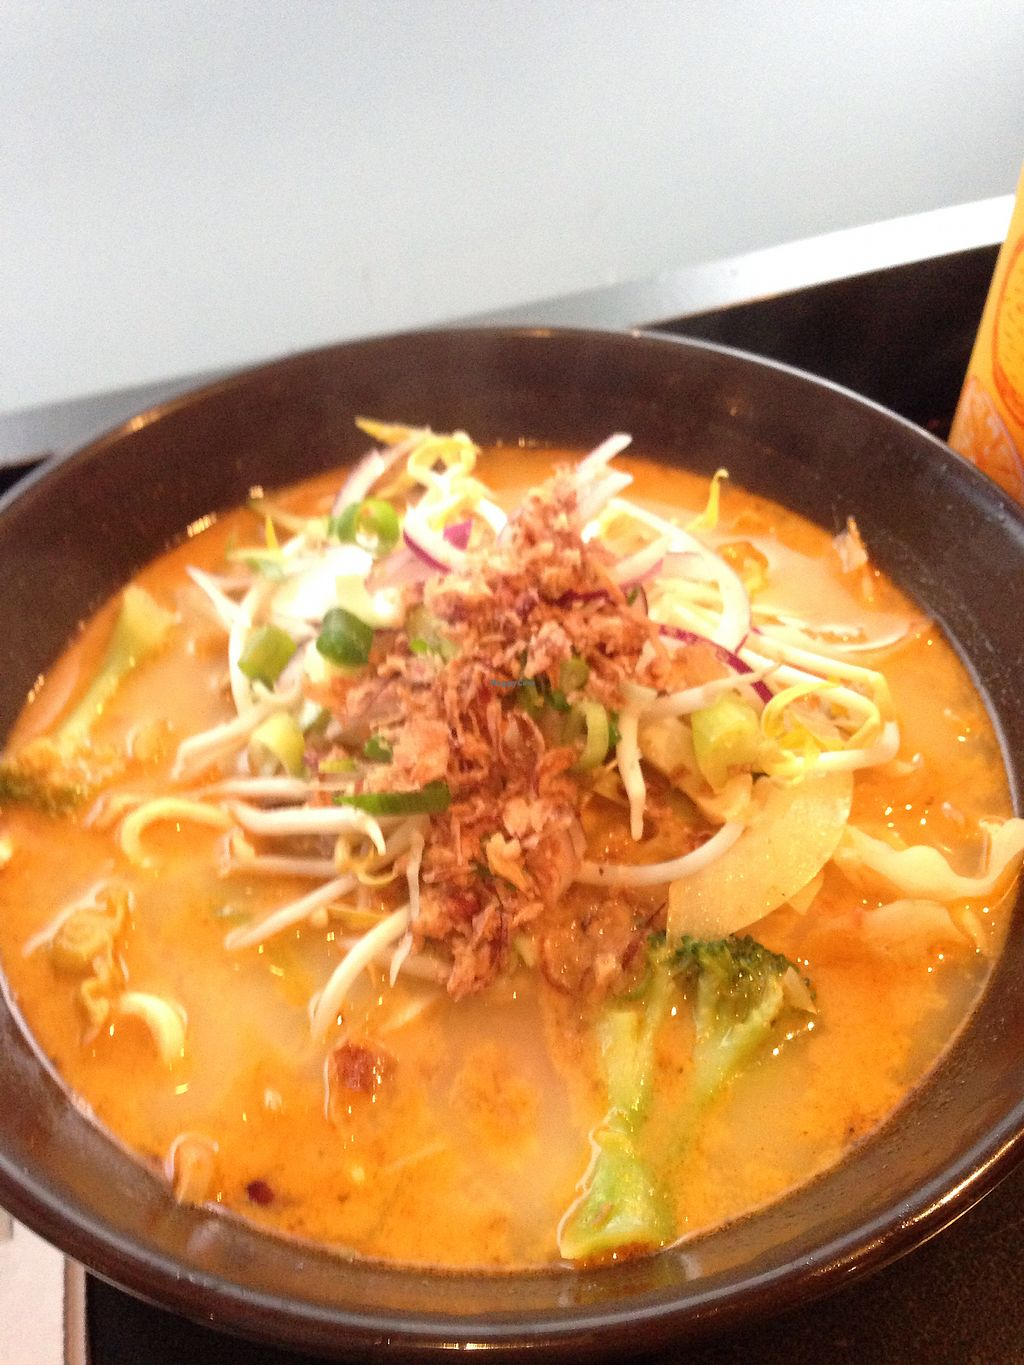 """Photo of Dumpling World  by <a href=""""/members/profile/CatDouglas"""">CatDouglas</a> <br/>vegetarian laksa <br/> July 18, 2017  - <a href='/contact/abuse/image/18856/281730'>Report</a>"""